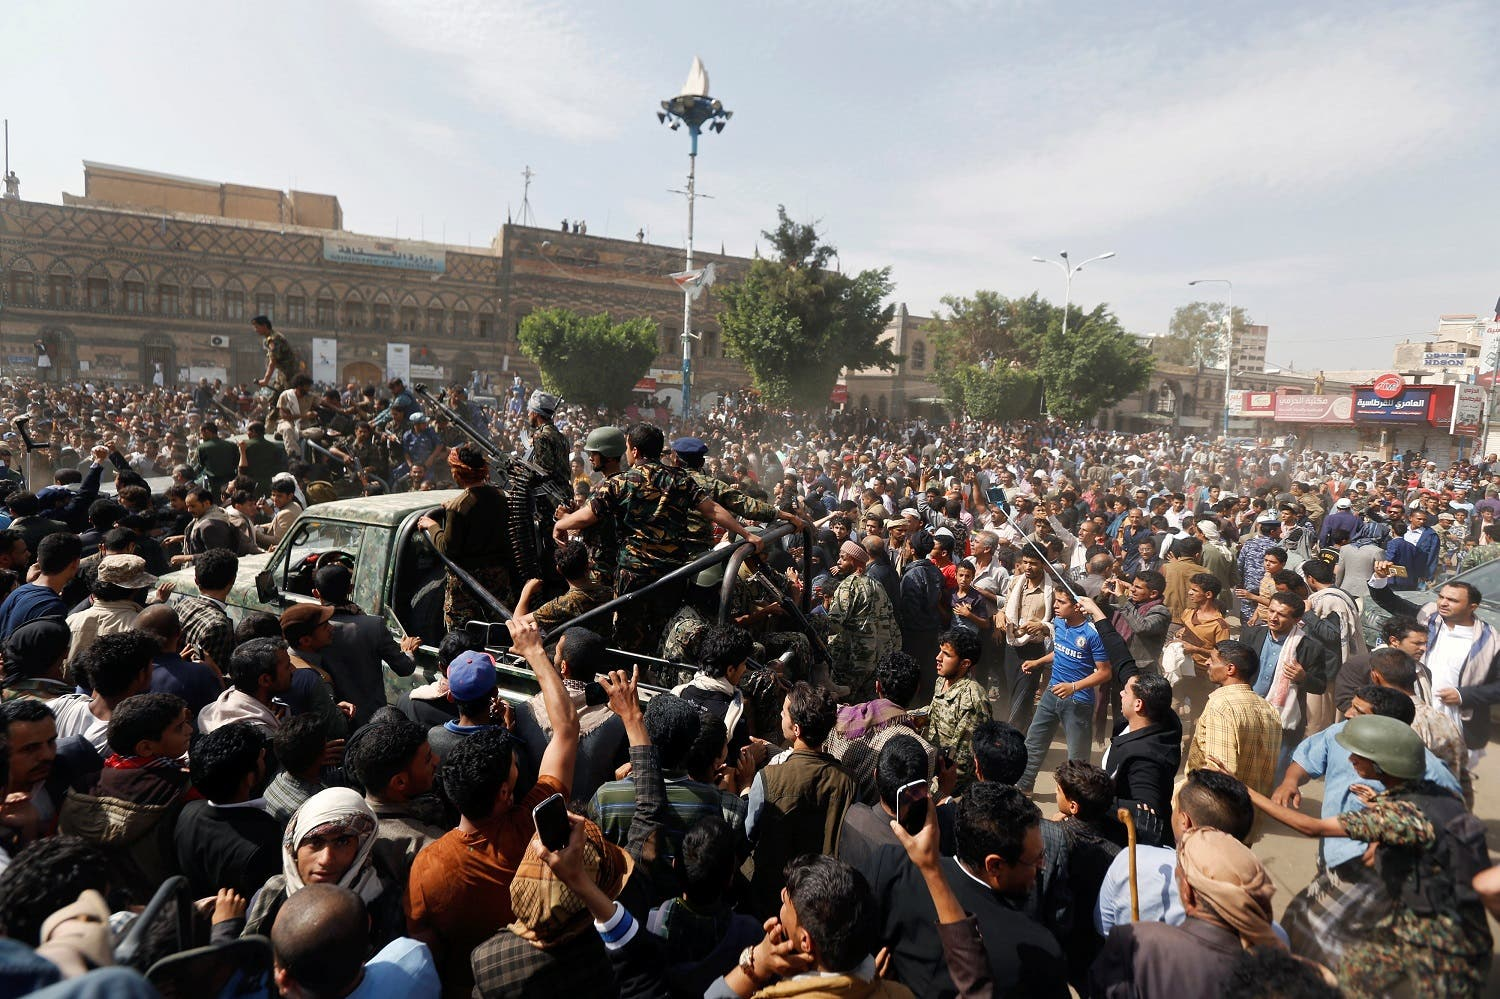 People and police troopers gather at the site of the execution of Muhammad al-Maghrabi. (Reuters)